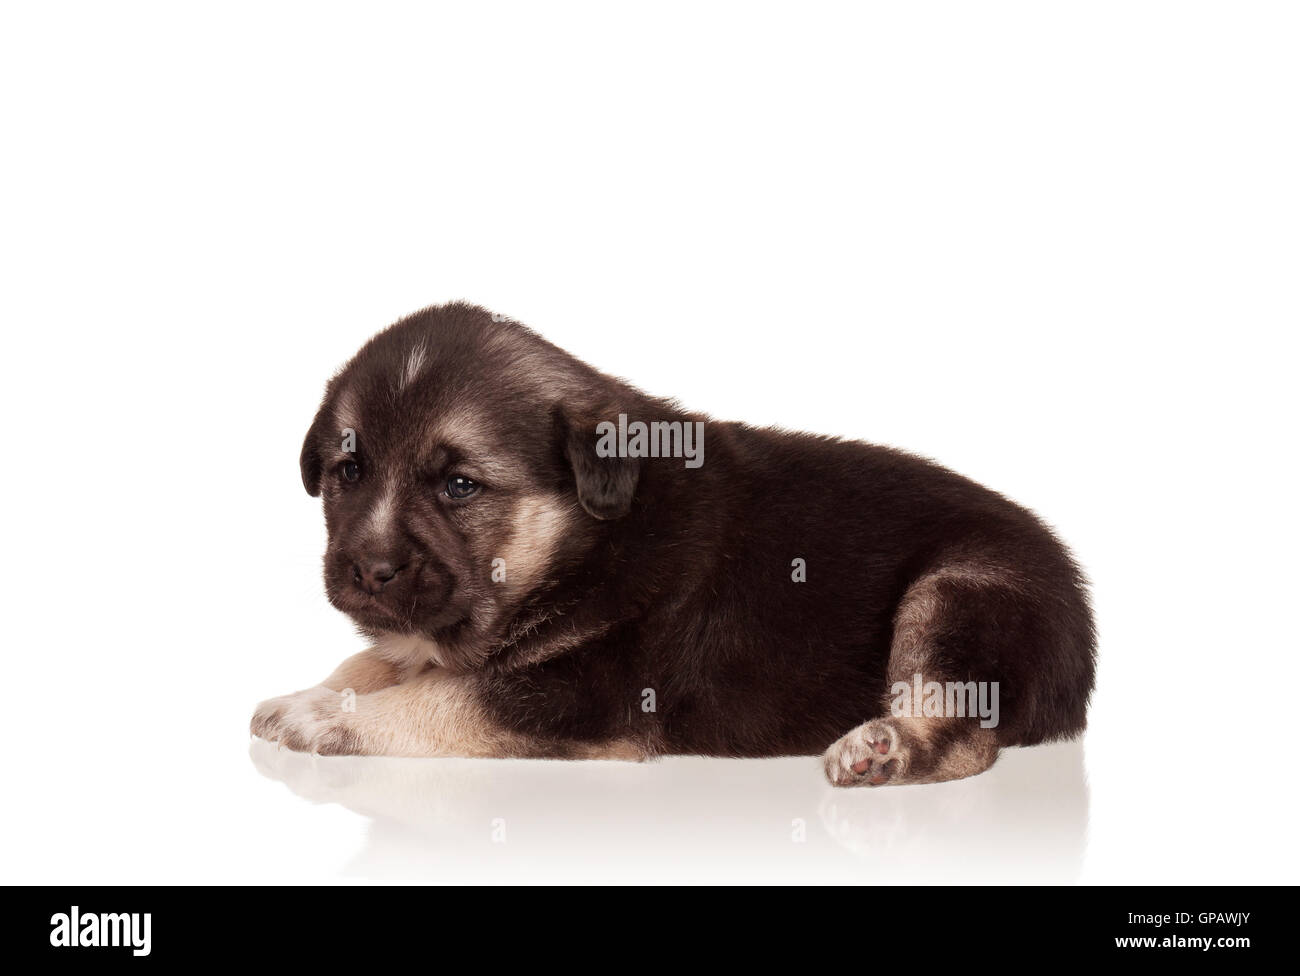 Cute puppy - Stock Image